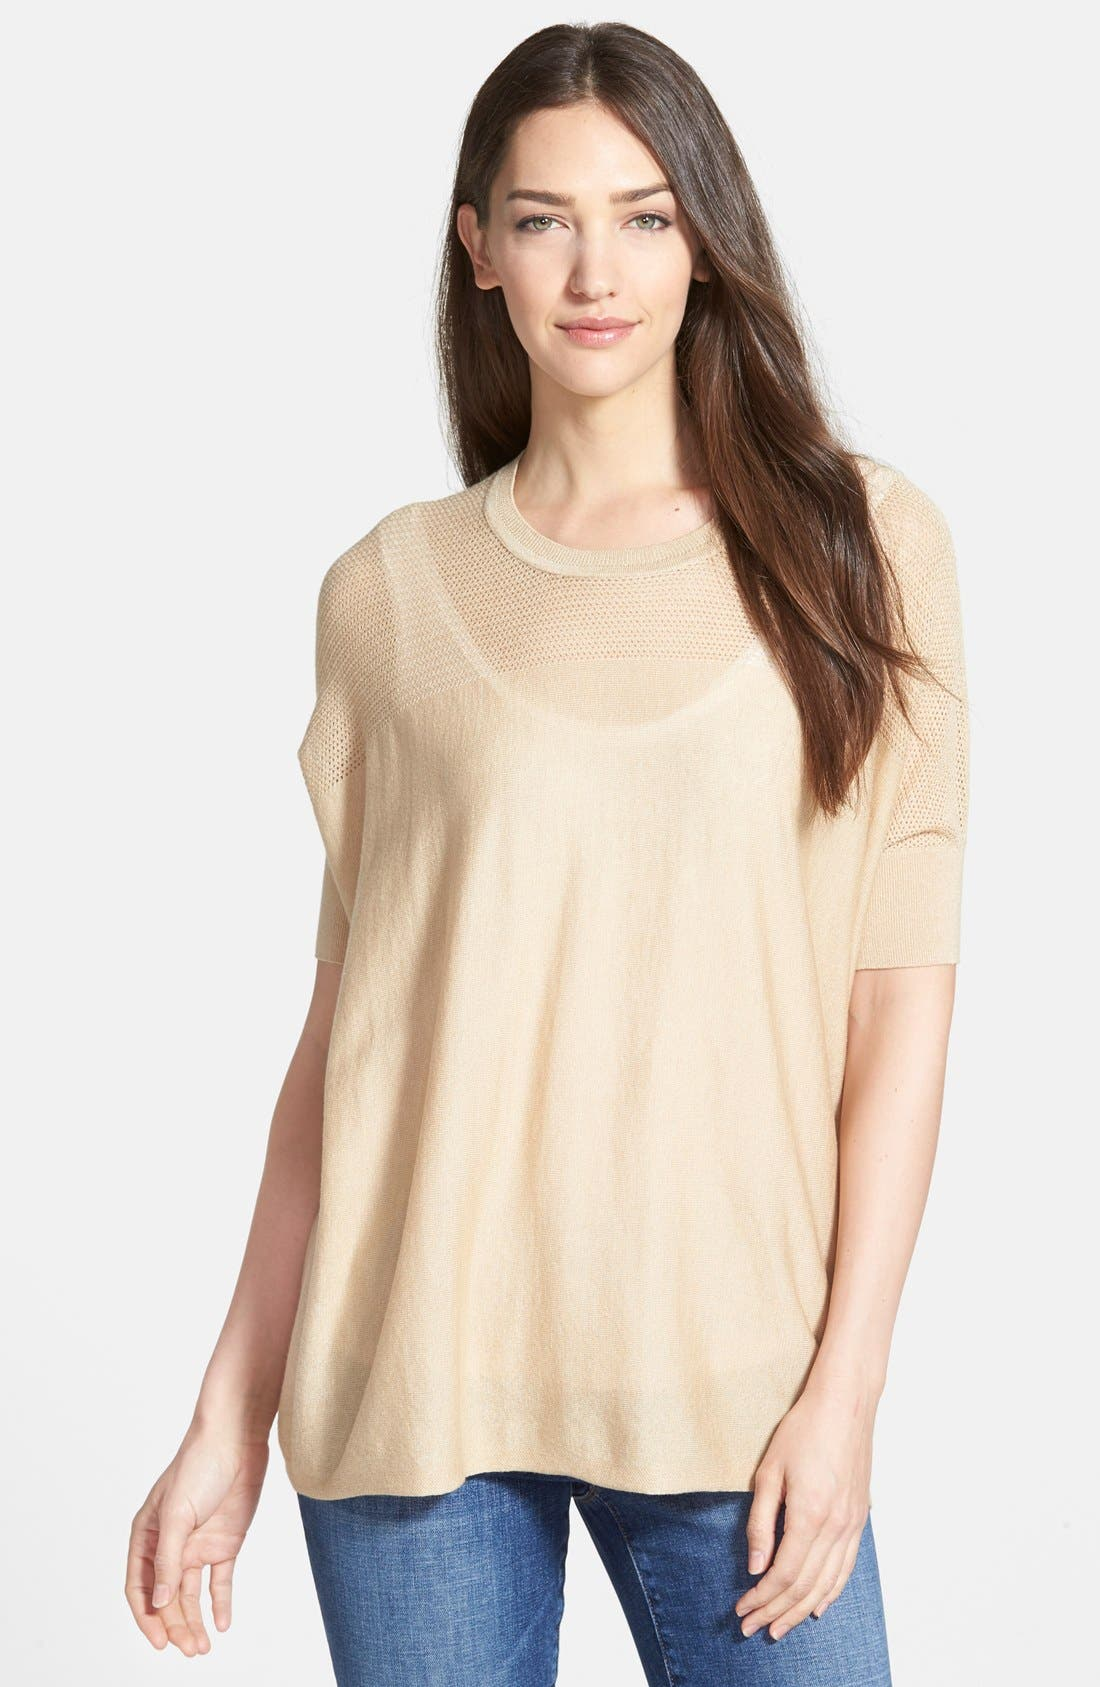 Main Image - Nordstrom Collection 'Lula' Open Stitched Yoke Pullover Sweater